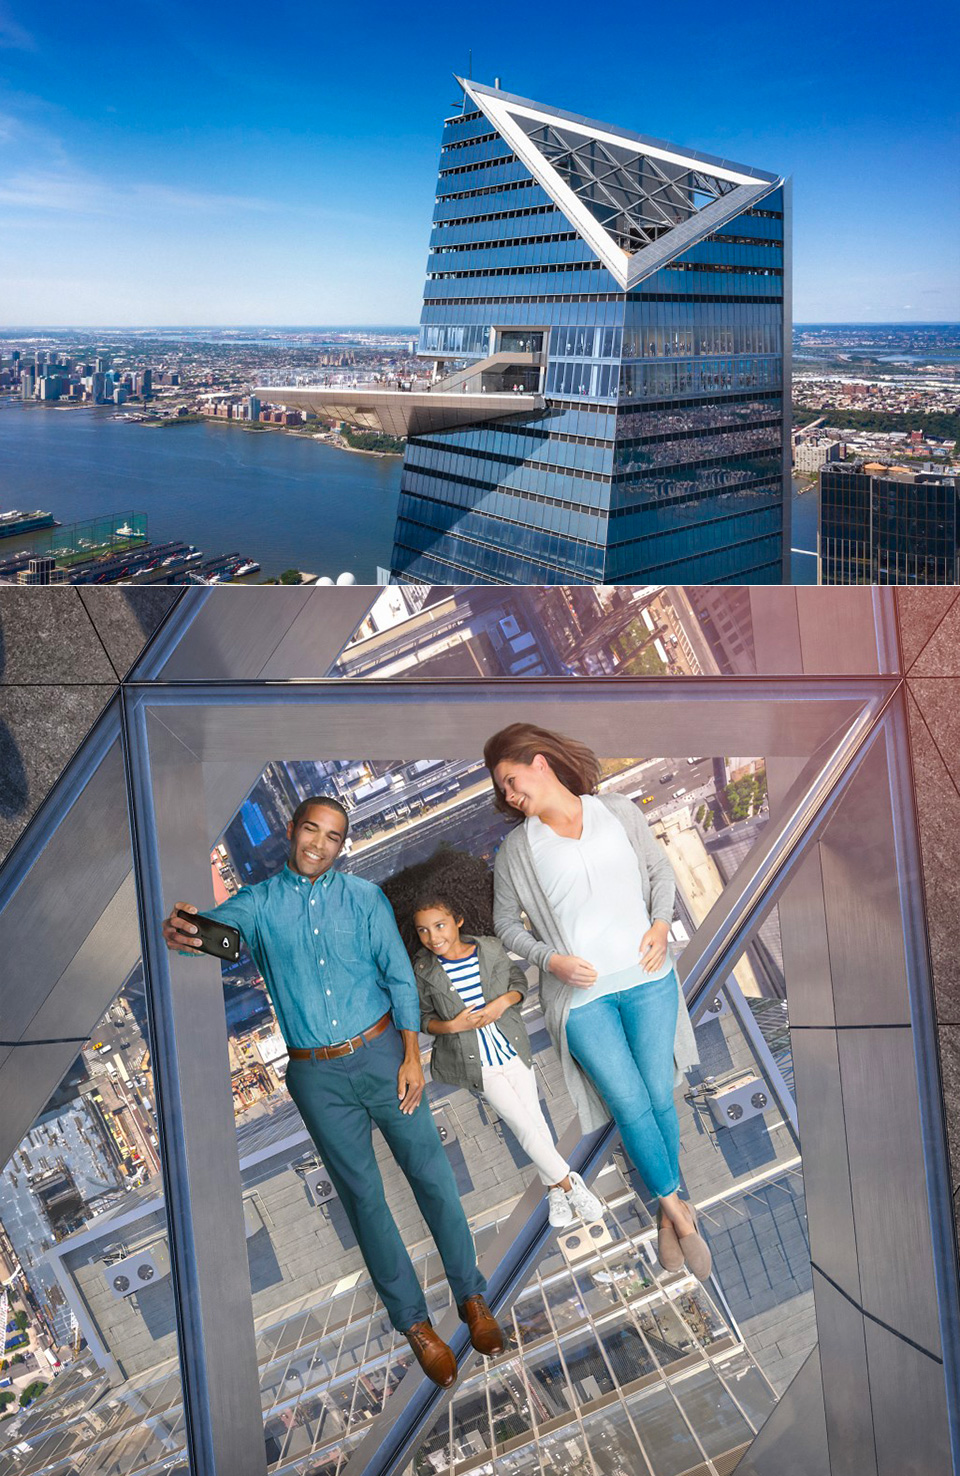 The Edge Hudson Yards Observation Deck